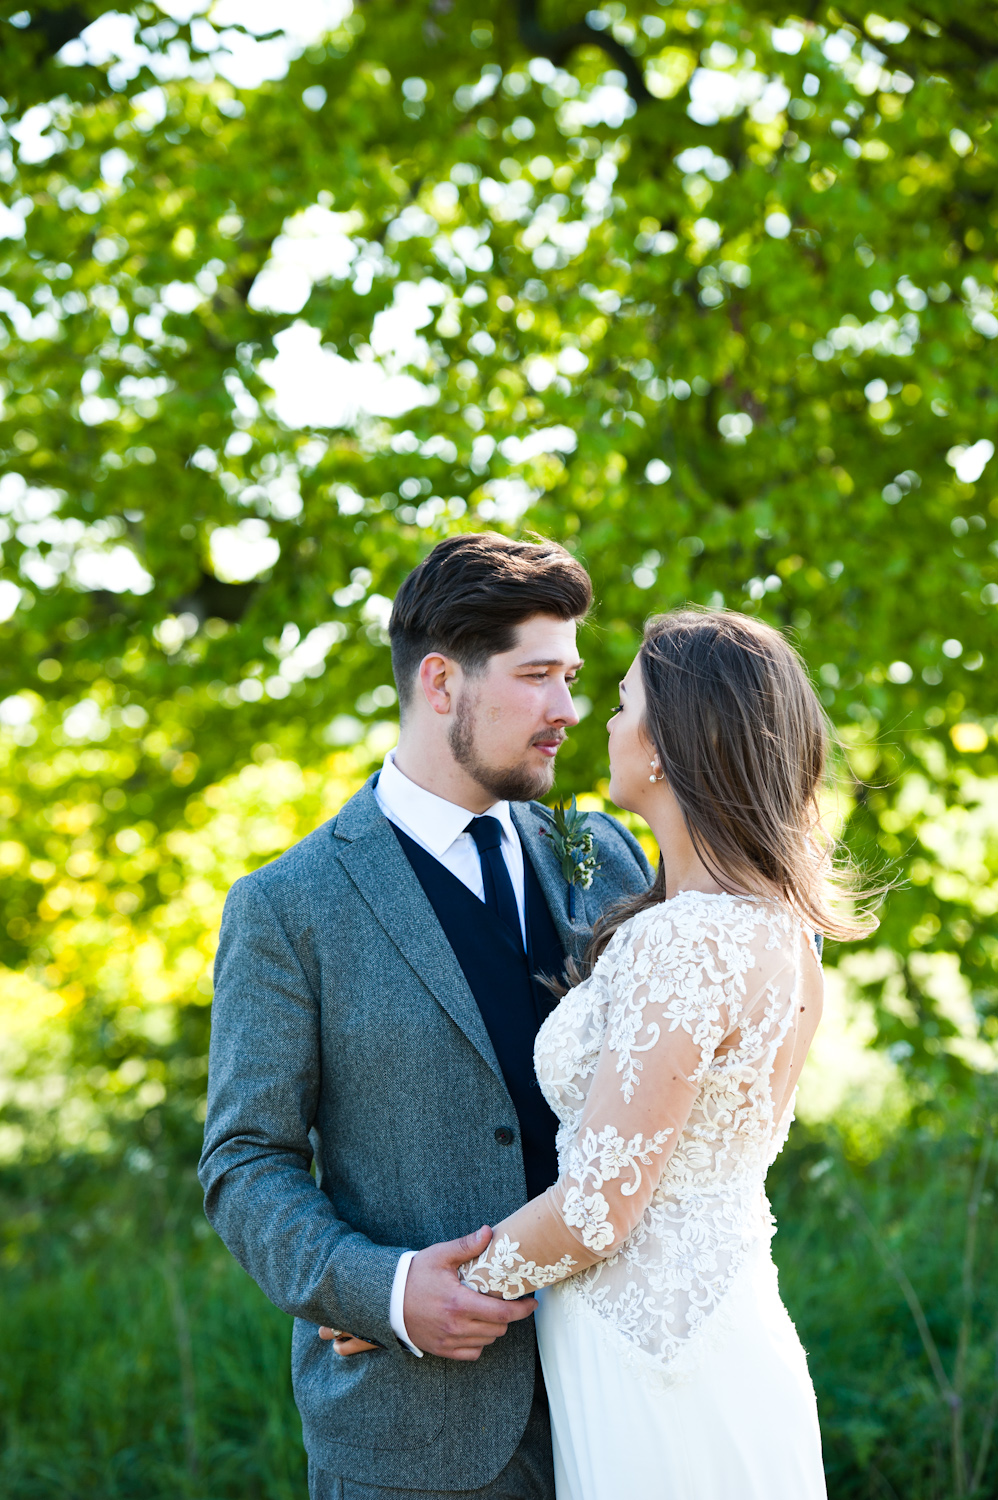 wedding photo-103.jpg